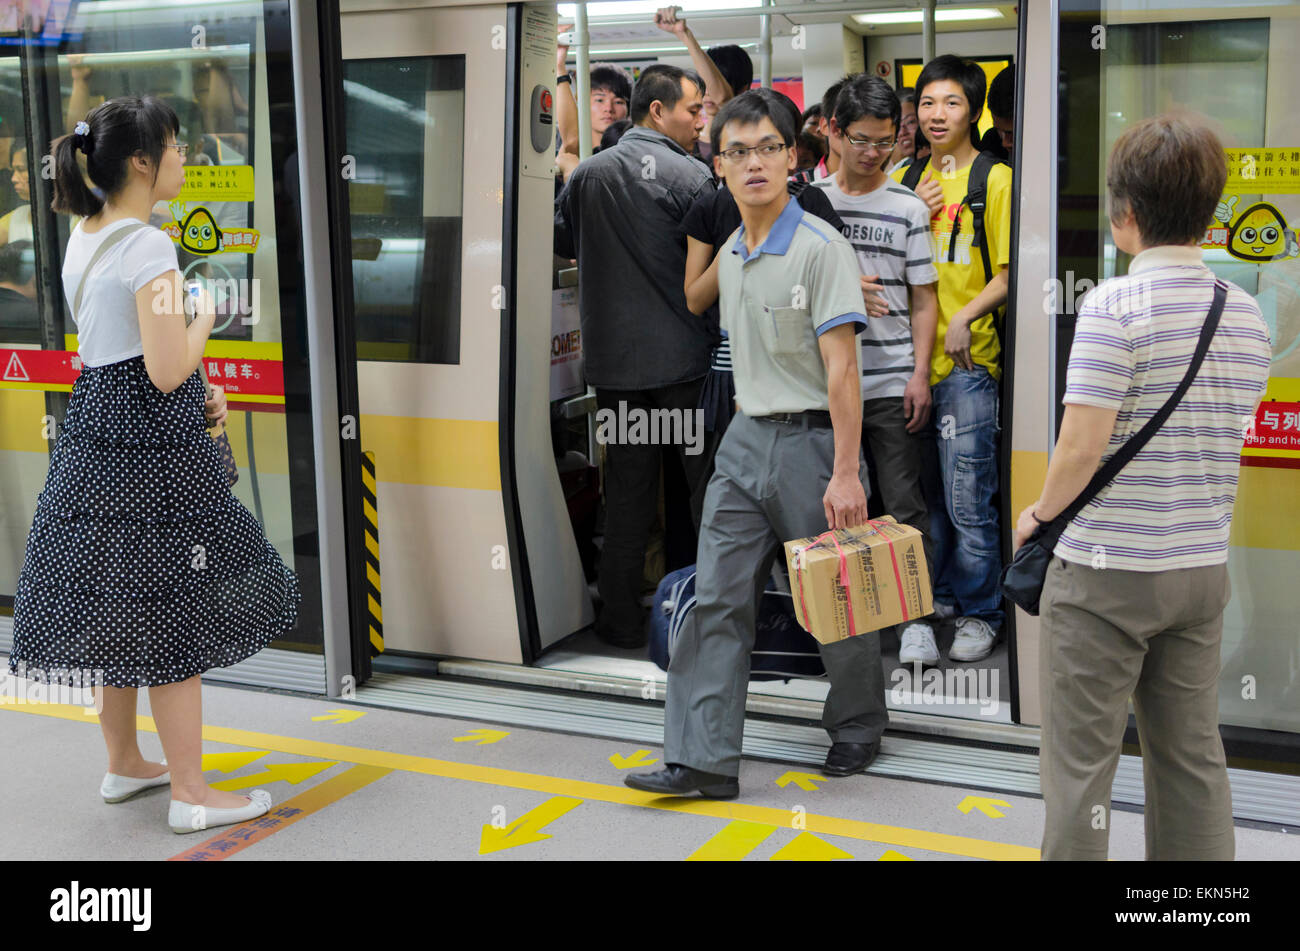 Passengers get off a metro train in Guangzhou, China. Screen doors can clearly be seen between the platform train Stock Photo